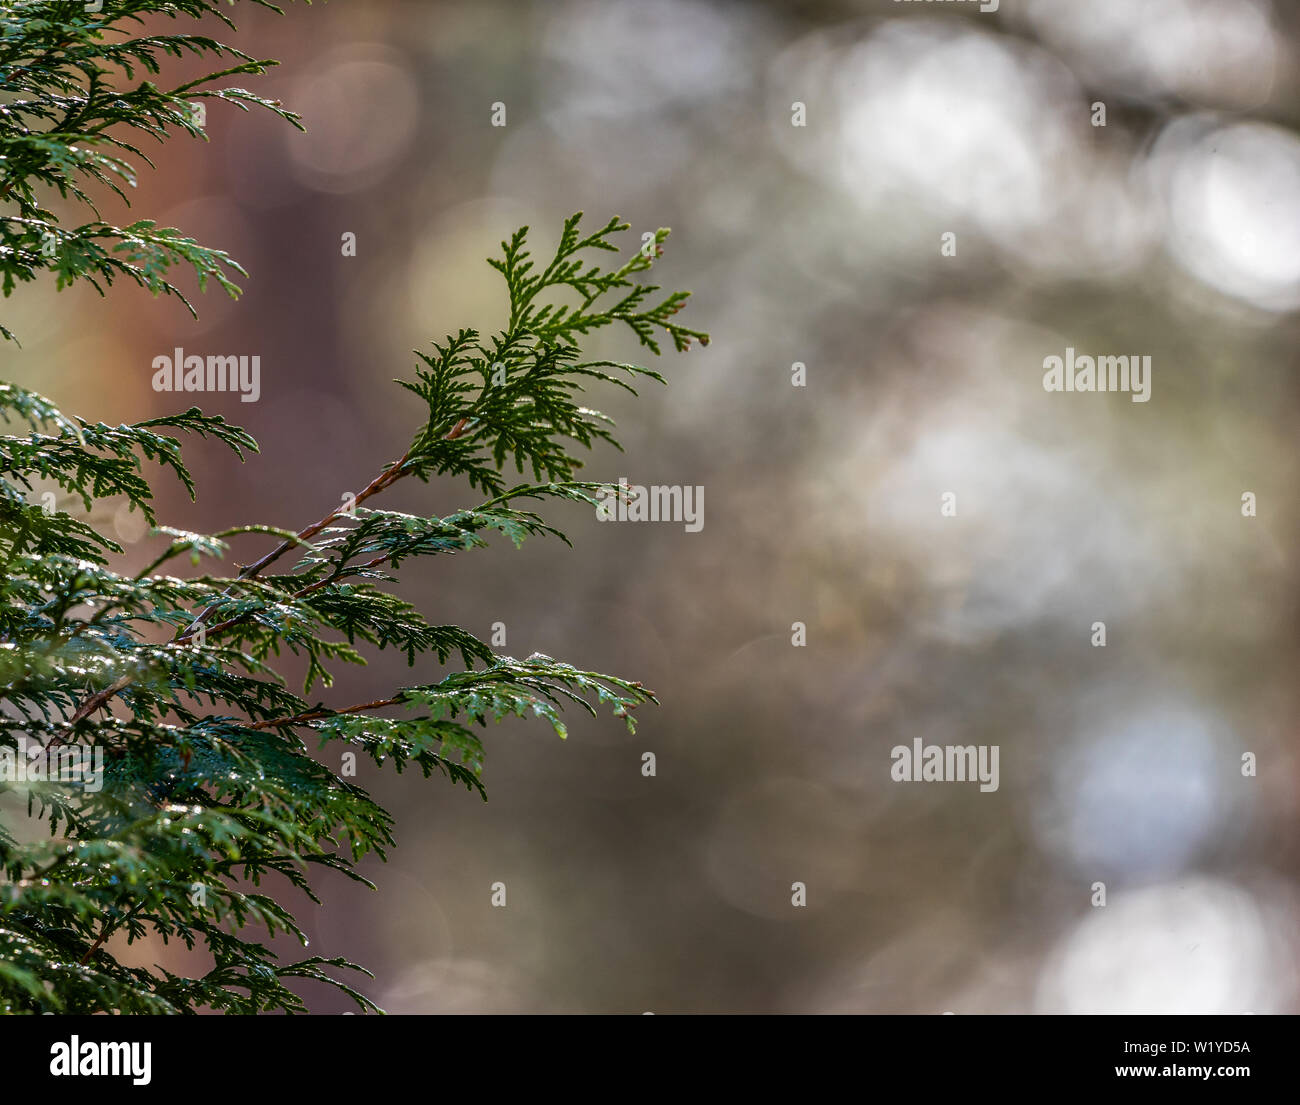 Abstract image of a branch of a juniper against an unsharp background with bokeh, much copy-space, background - Stock Image